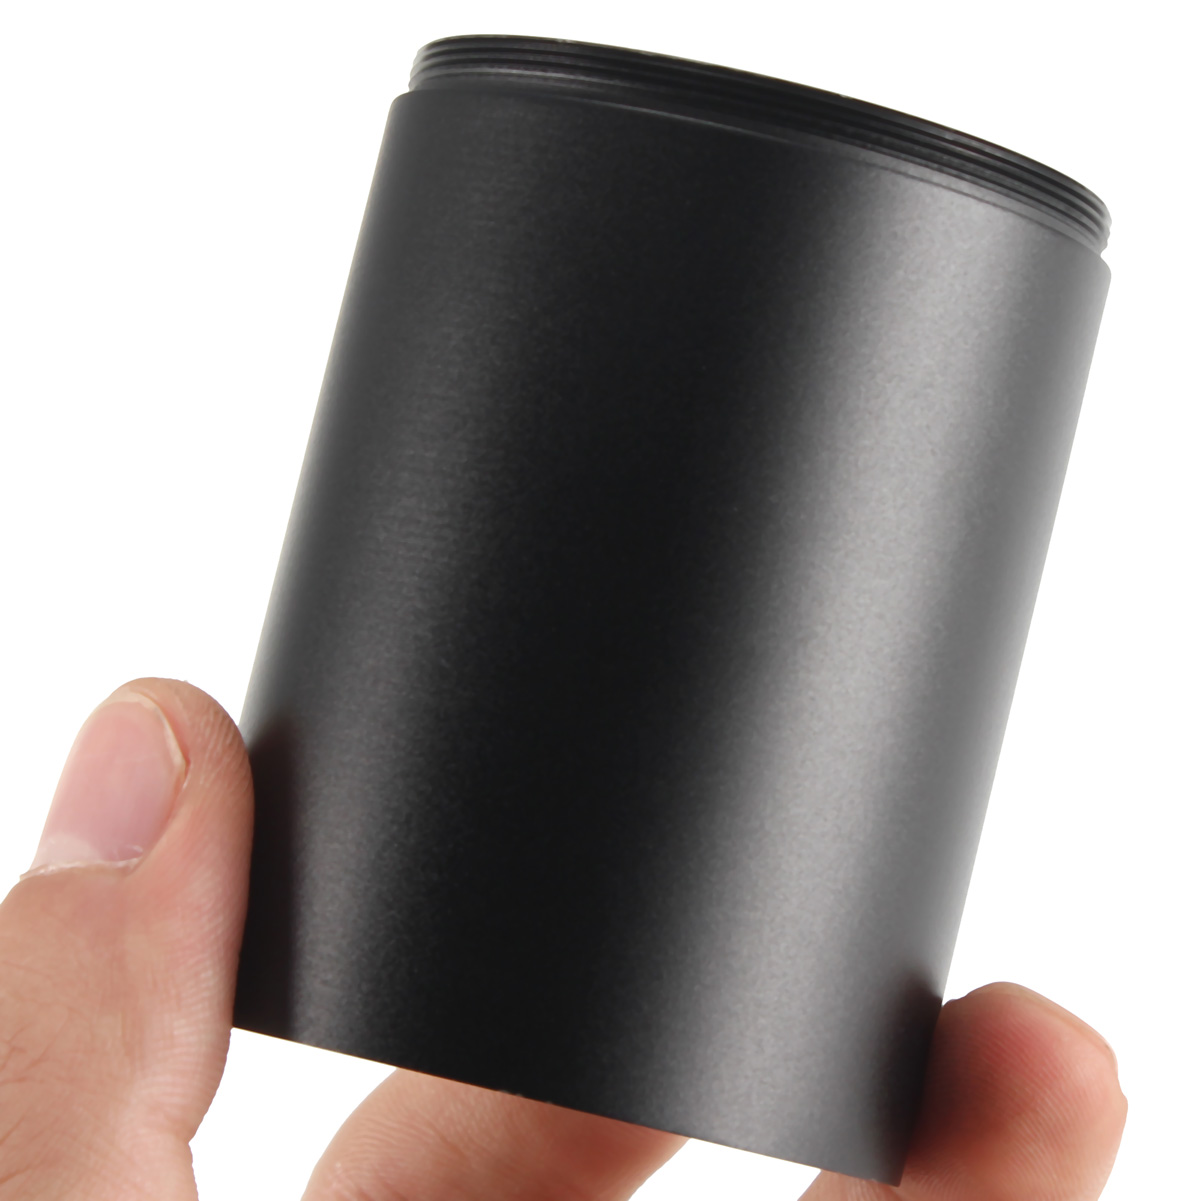 40mm Tactical Sunshade Tube Shade For Most Scope Objective